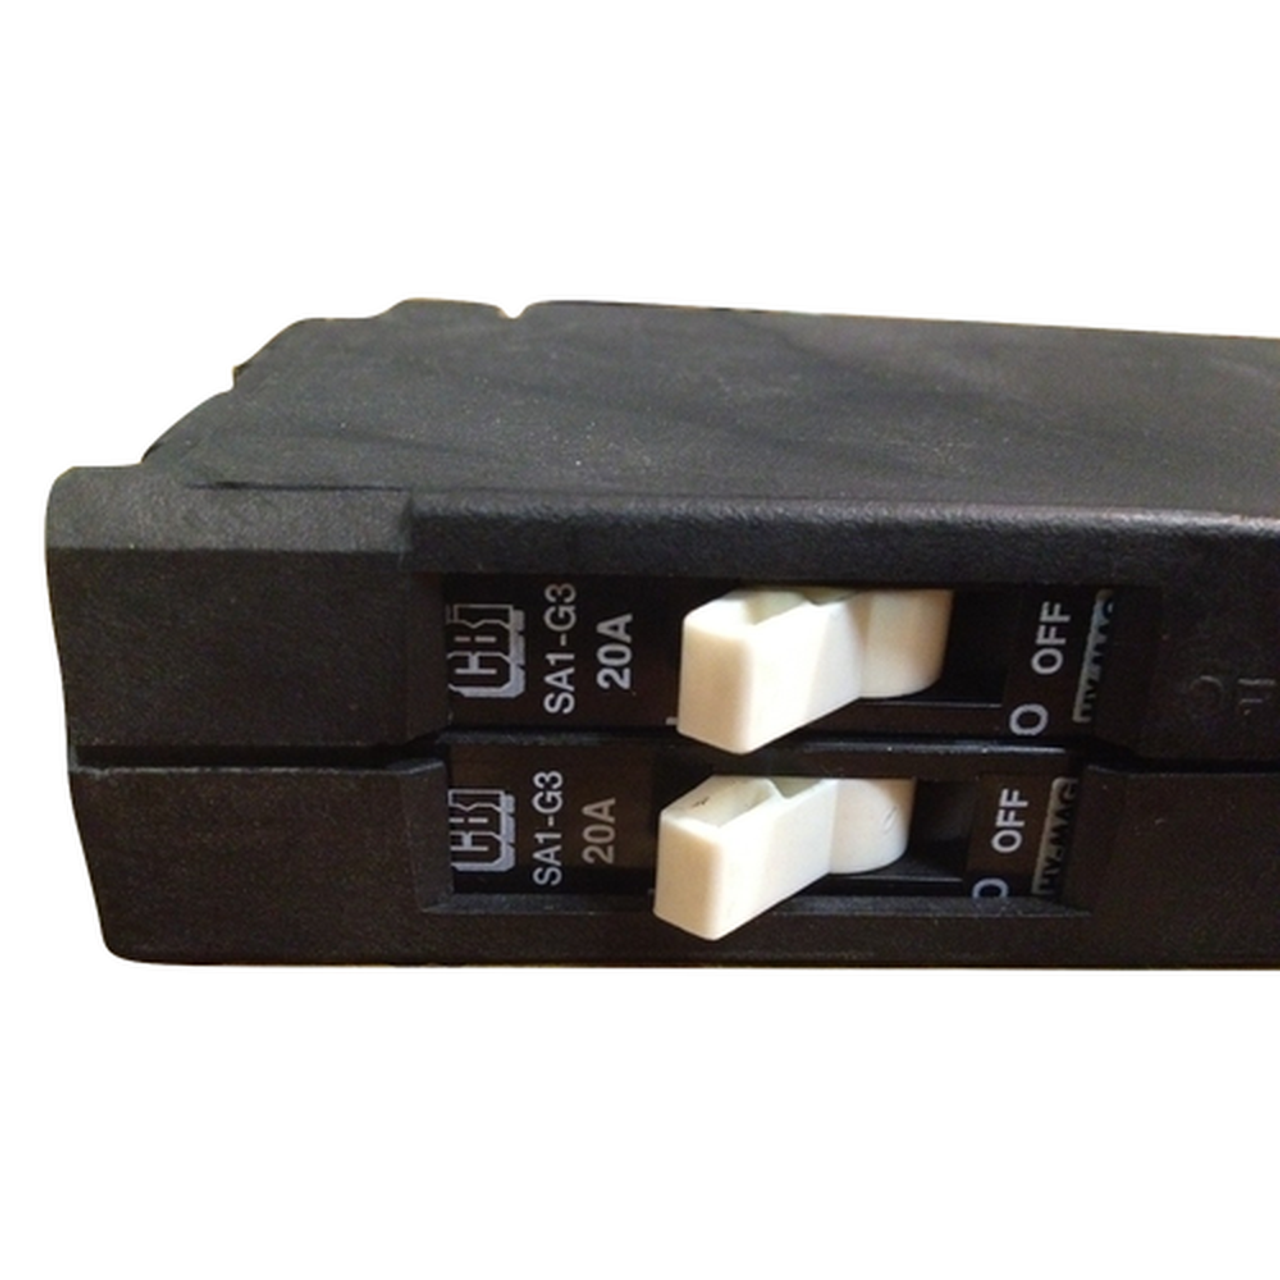 Leviton Colortran ENR Dimmer Module Model 166-362 (Topaz)